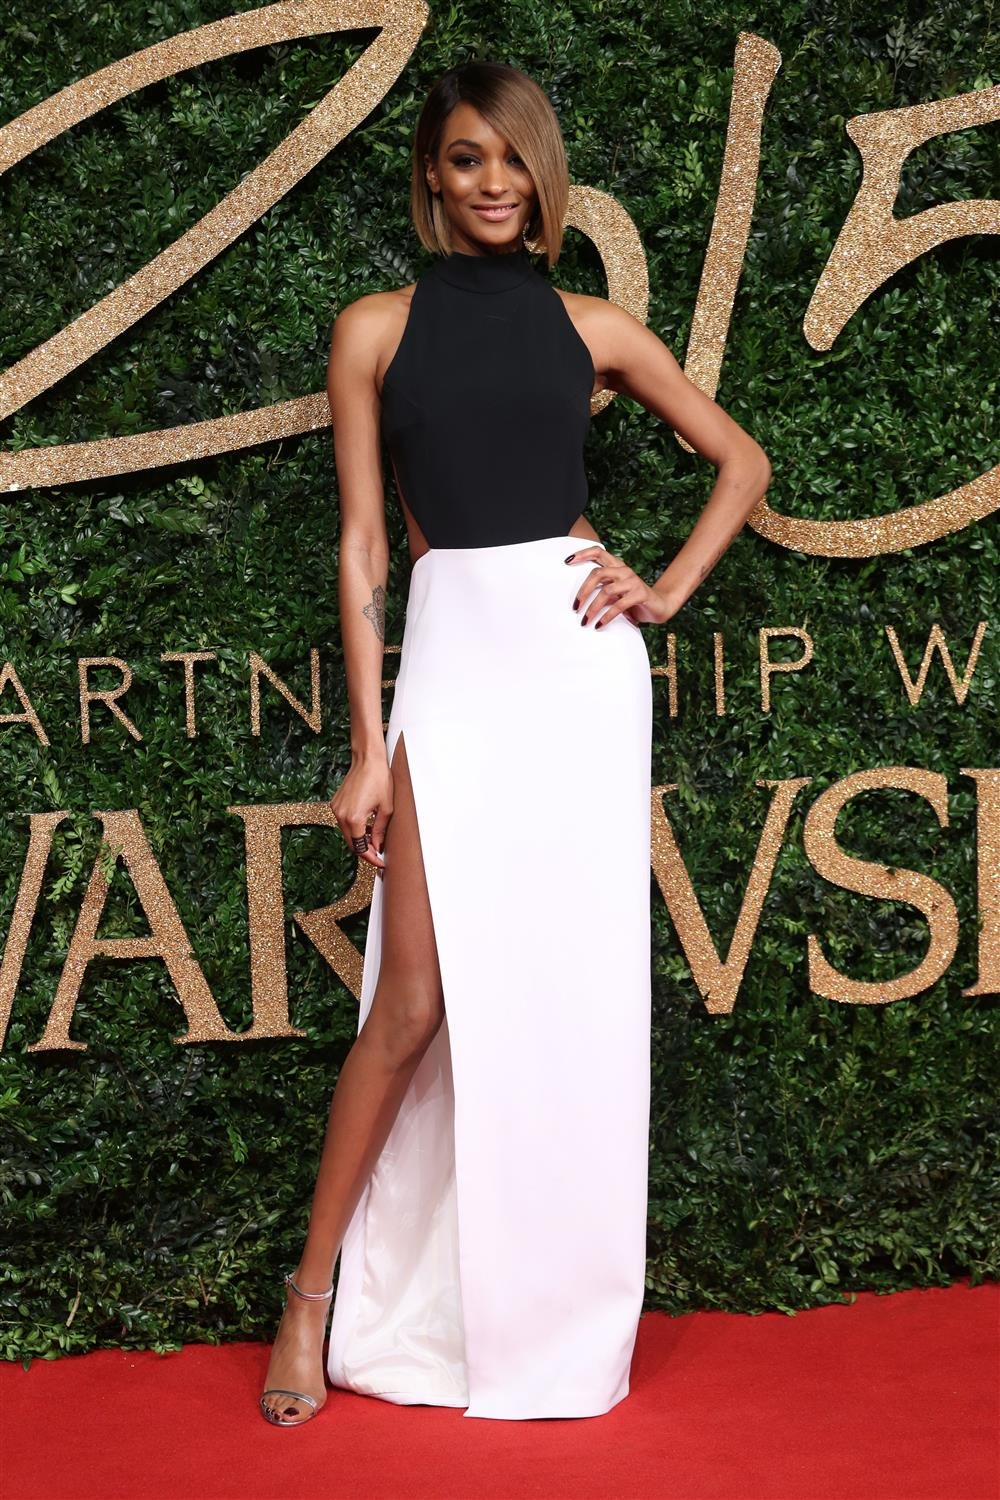 gtres u295704 054. Jourdan Dunn